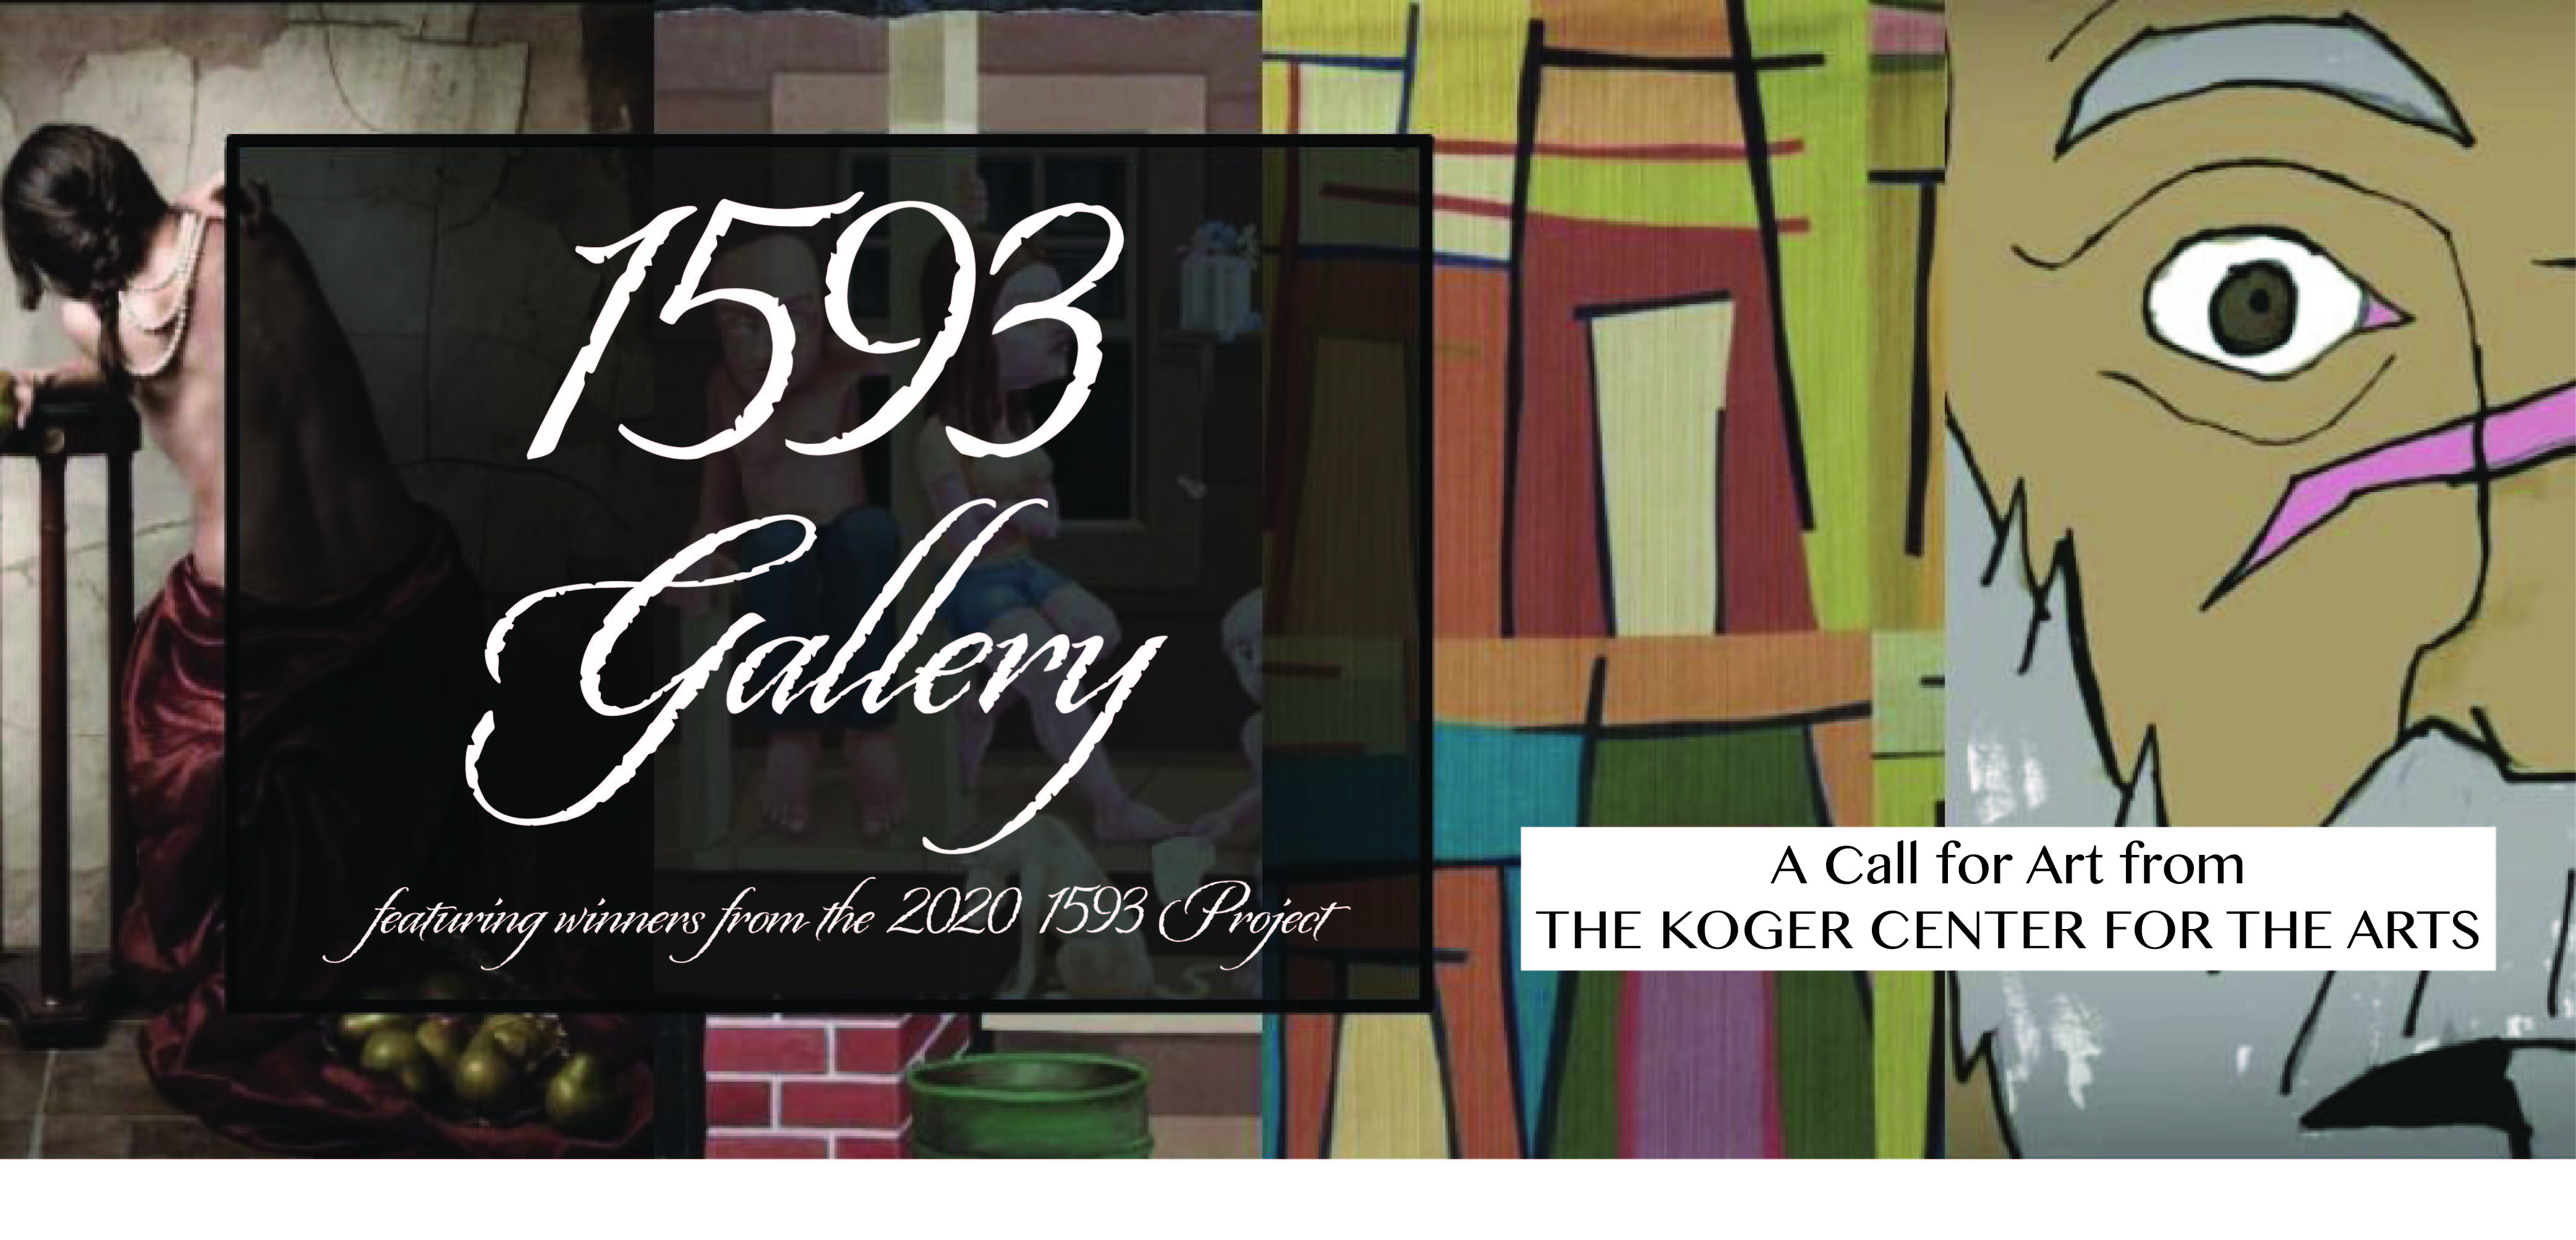 1593 Gallery: Featuring Winners of the 2020 Project